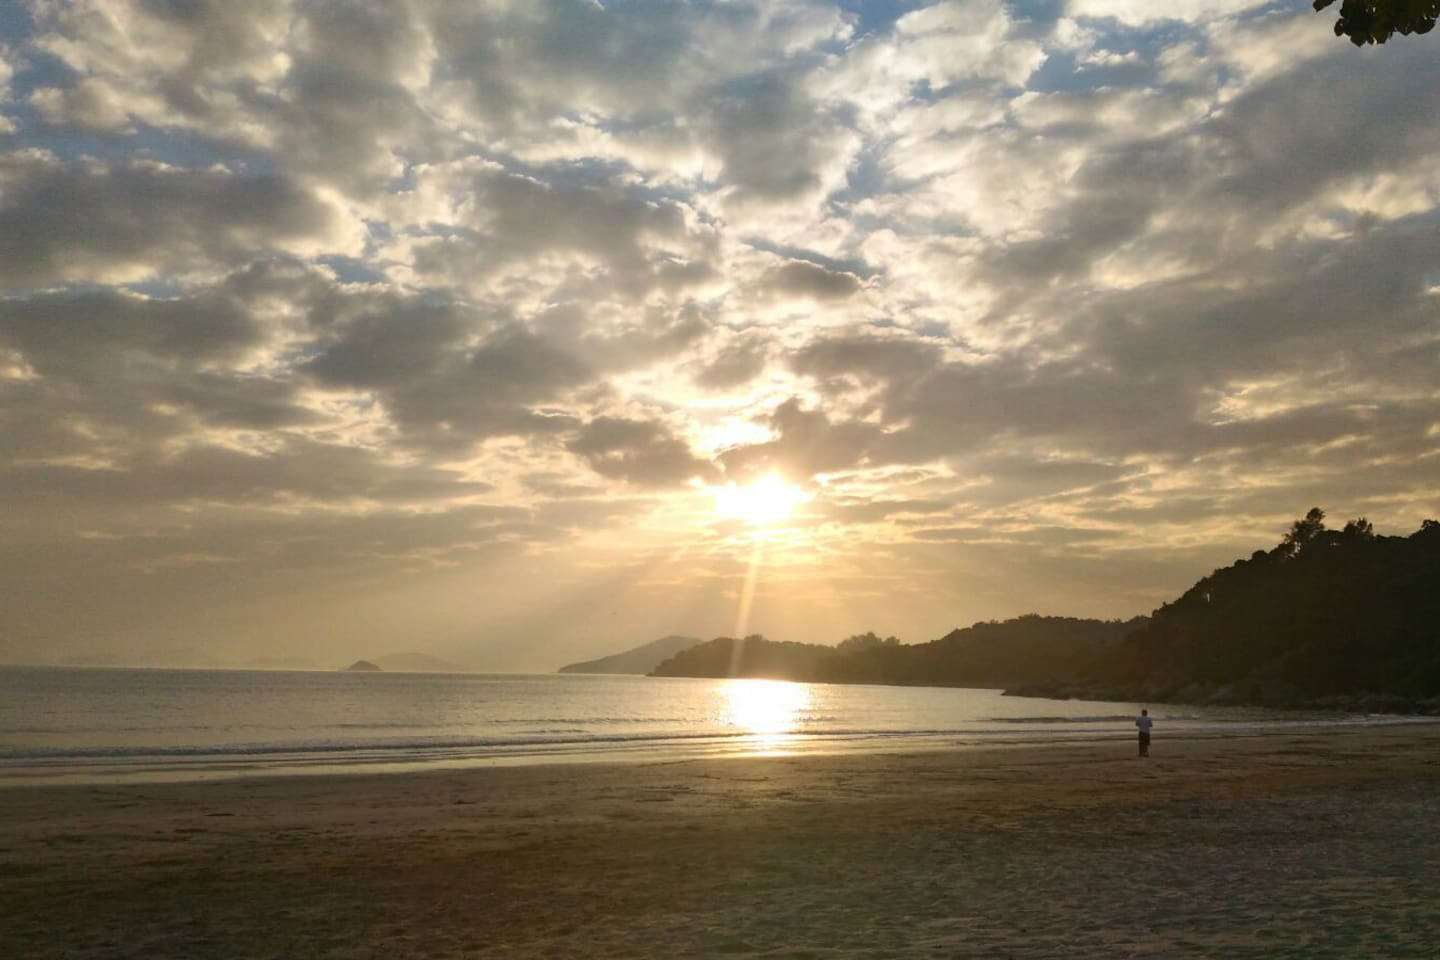 Pui O Beach, just 5 min. walk from the house